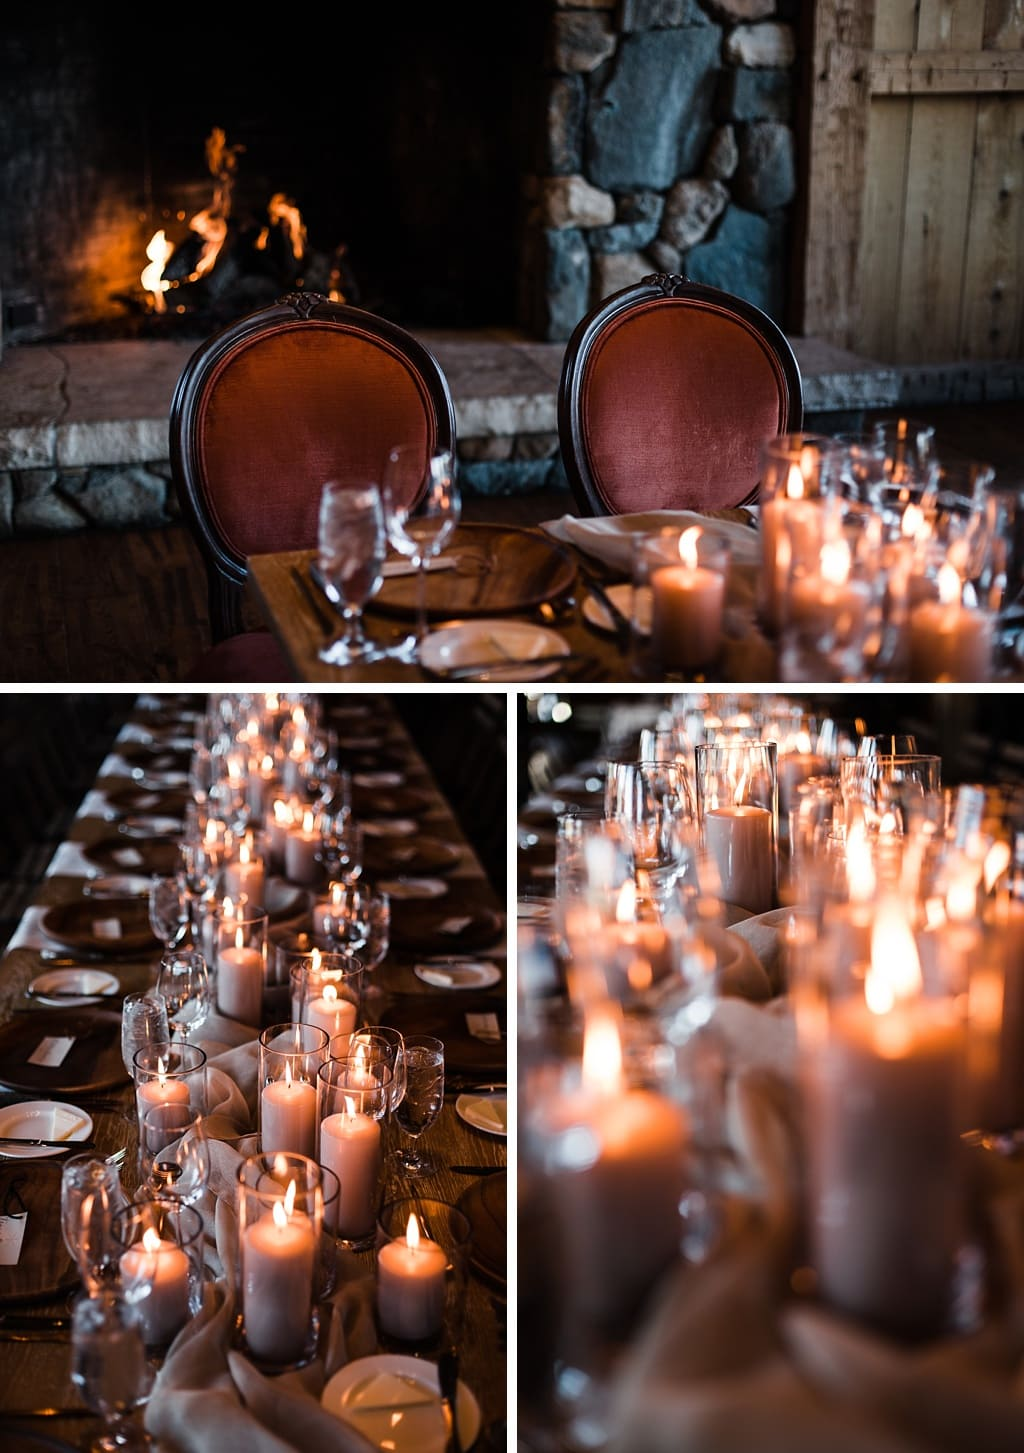 Tablescape with candles in glass containers elegant winter wedding planning by Love This Day Events florals by Yonder House